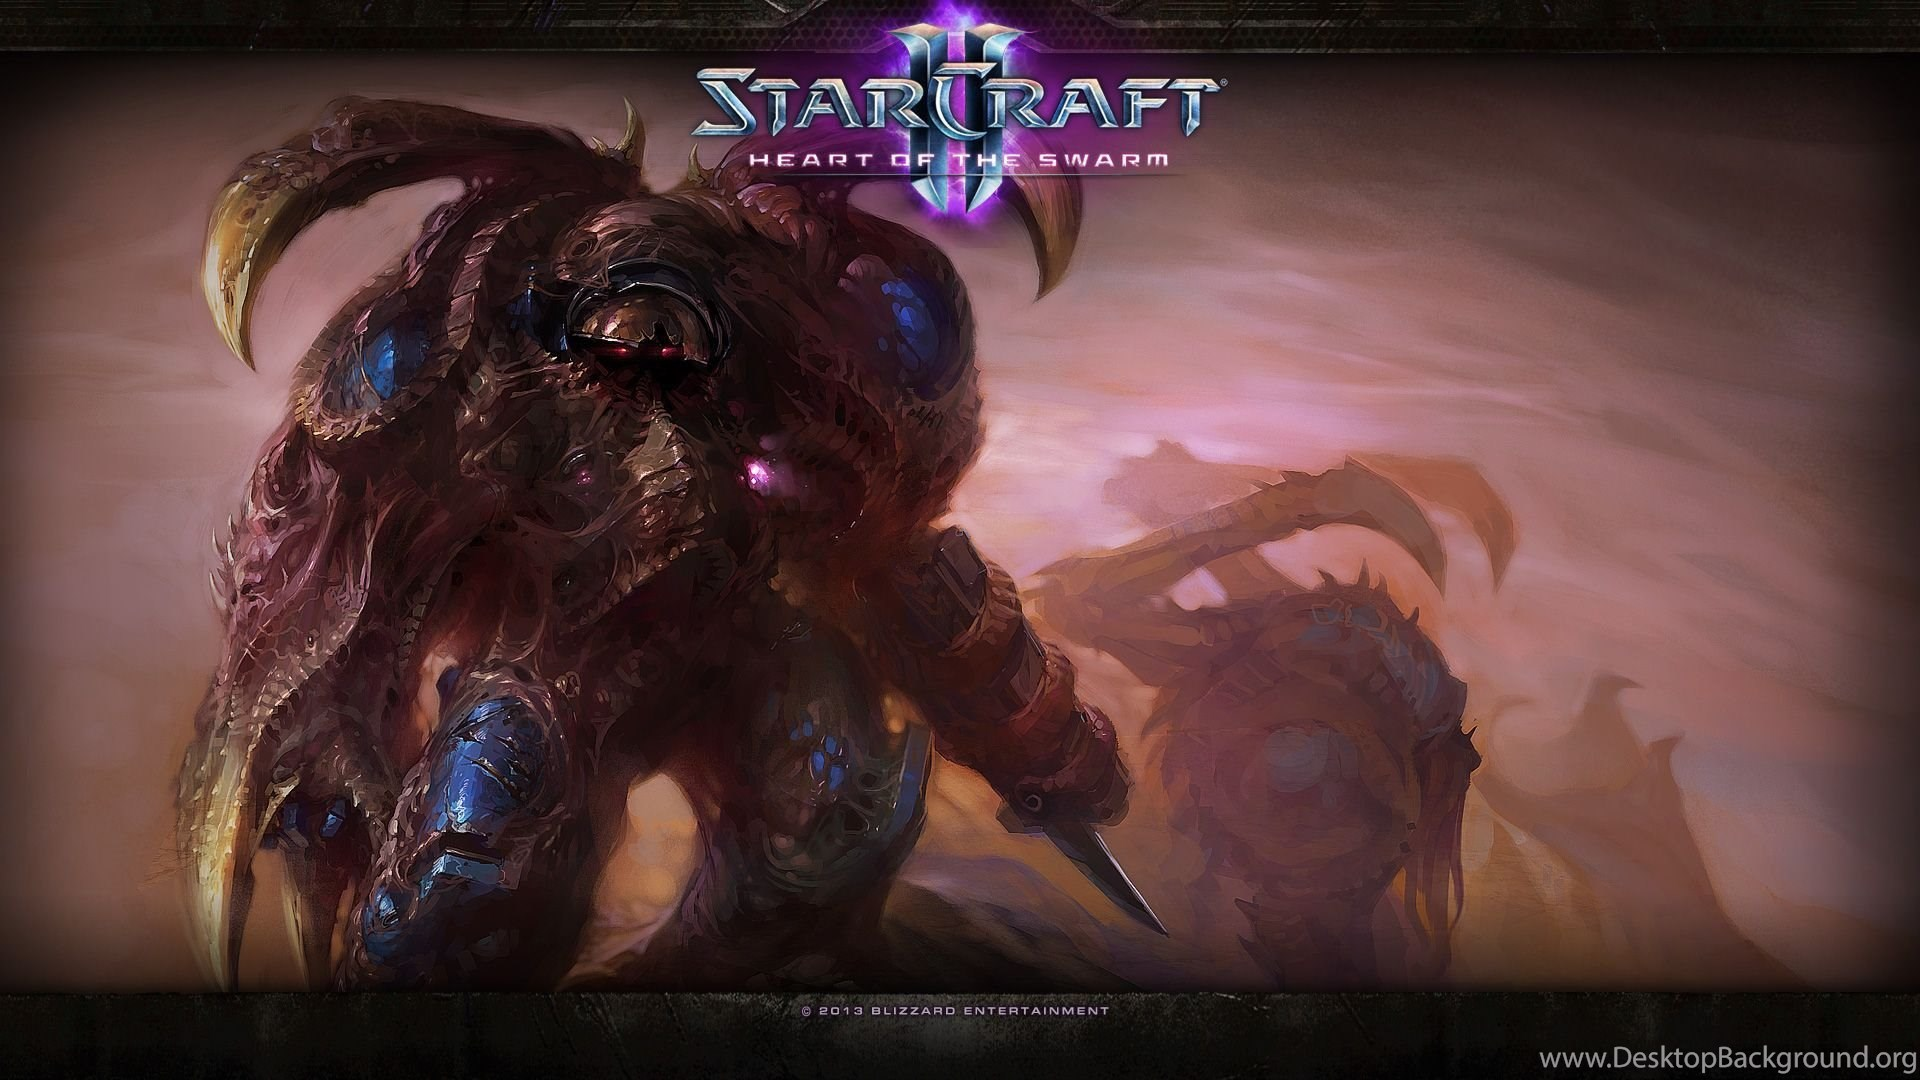 Starcraft 2 Wallpapers Desktop Background